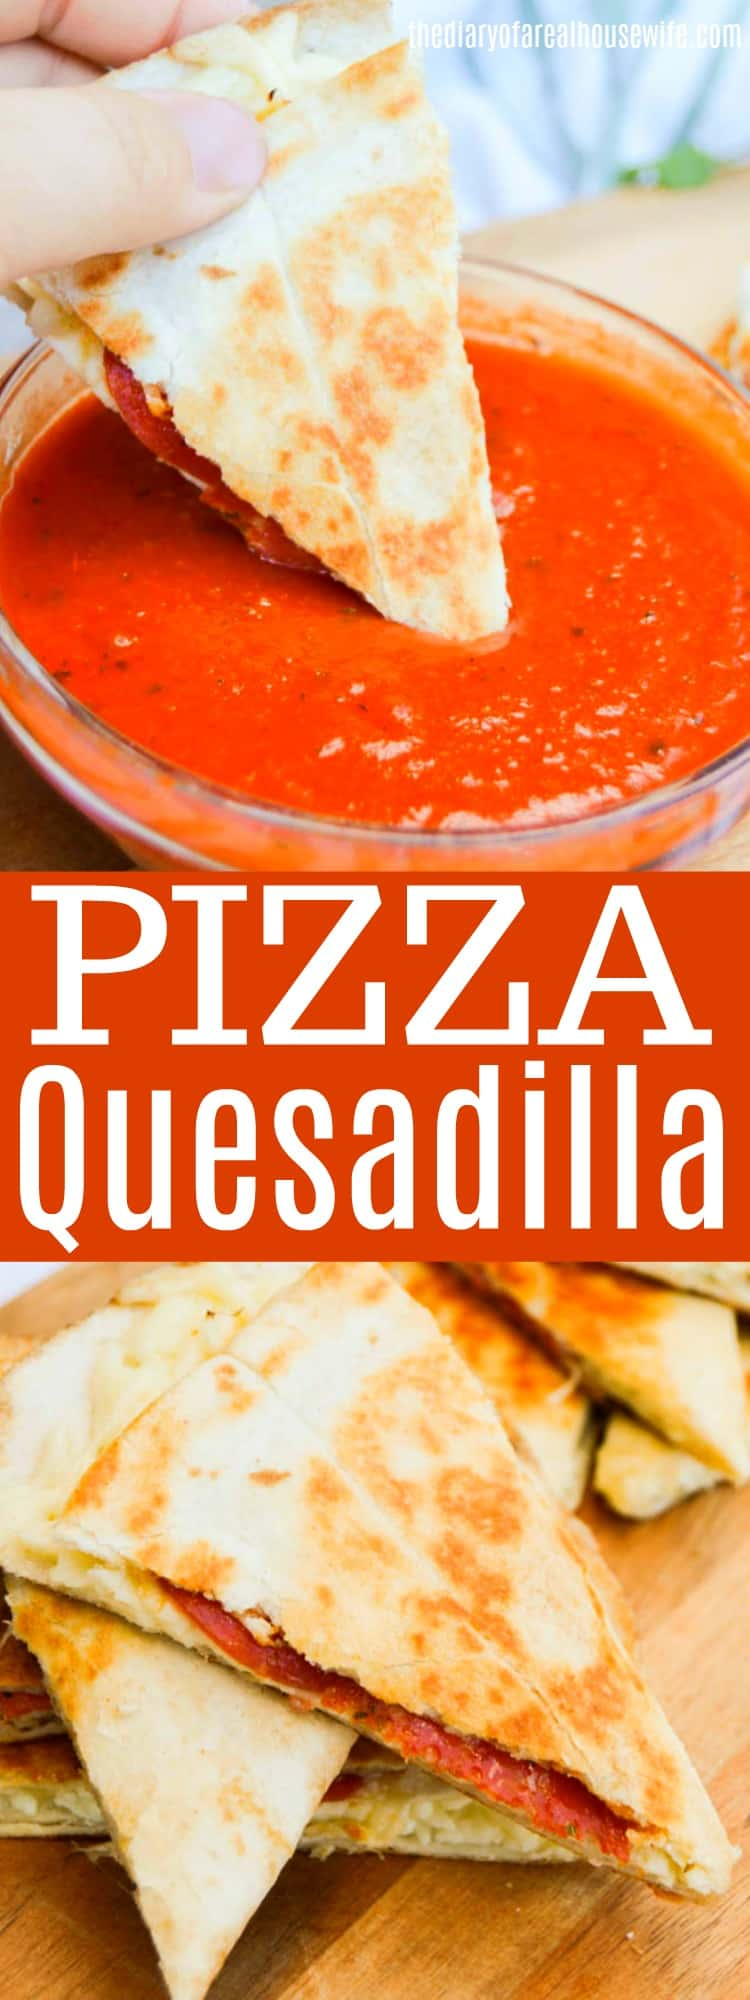 Pizza Quesadilla dipping in pizza sauce